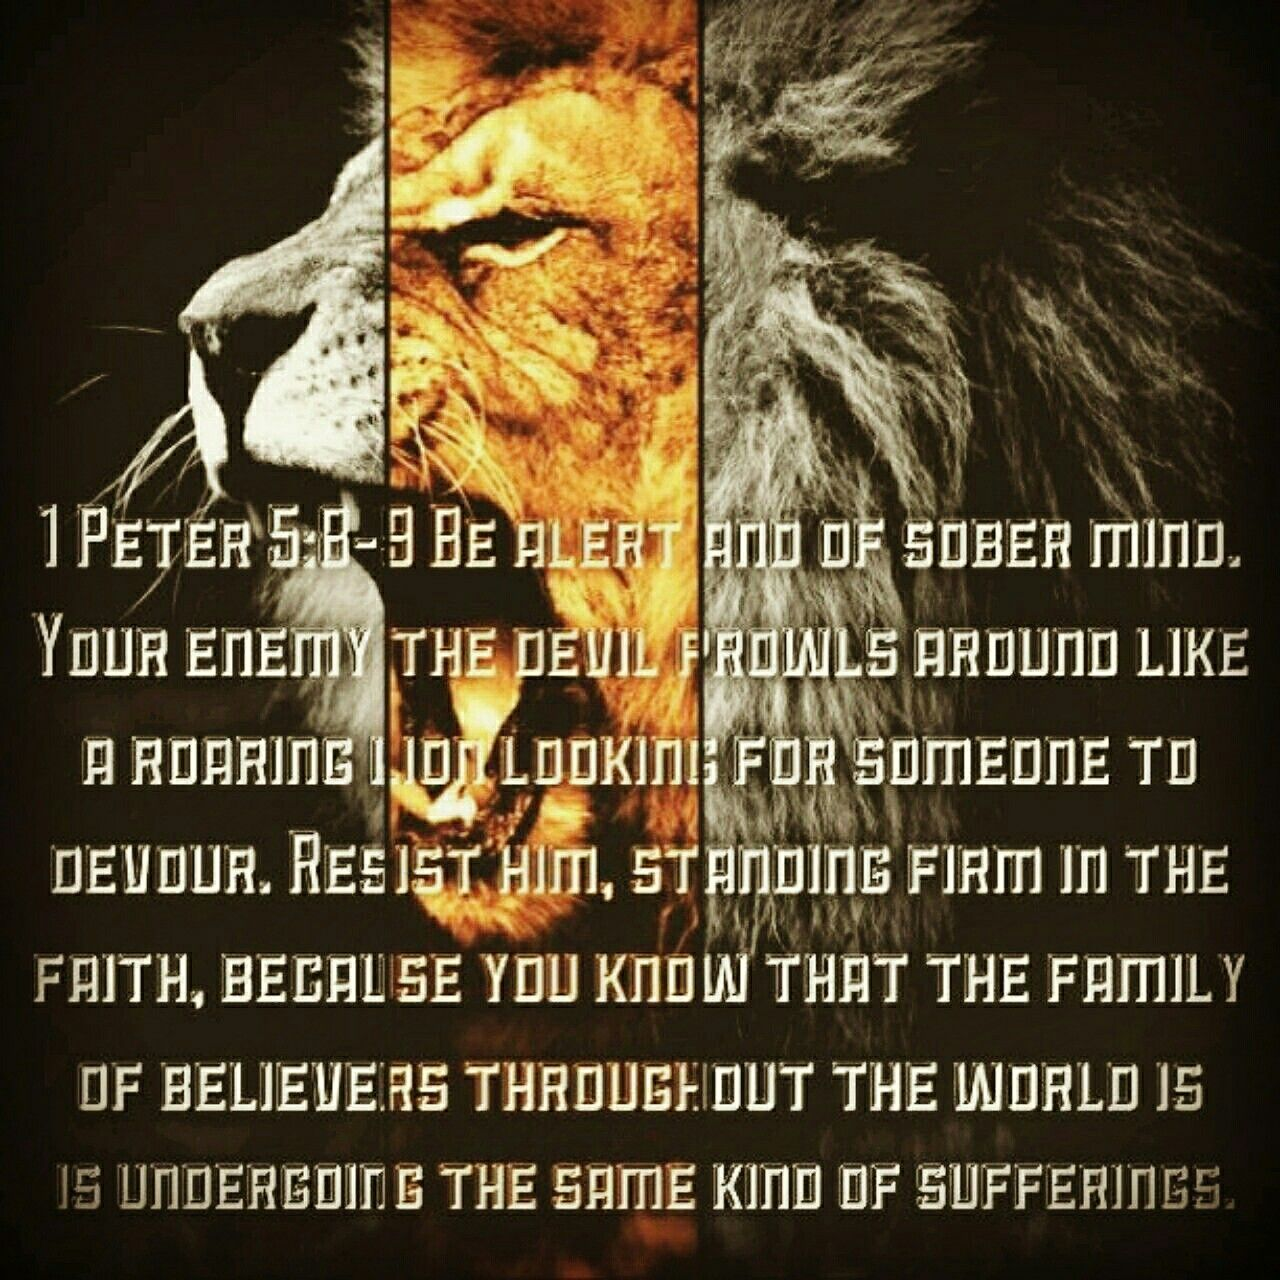 Be alert and of sober mind. Your enemy the devil prowls around like a roaring lion looking for someone to devour. Resist him, standing firm in the faith, because you know that the family of believers throughout the world is undergoing the same kind of sufferings. 1 Peter 5:8-9 NIV http://bible.com/111/1pe.5.8-9.NIV